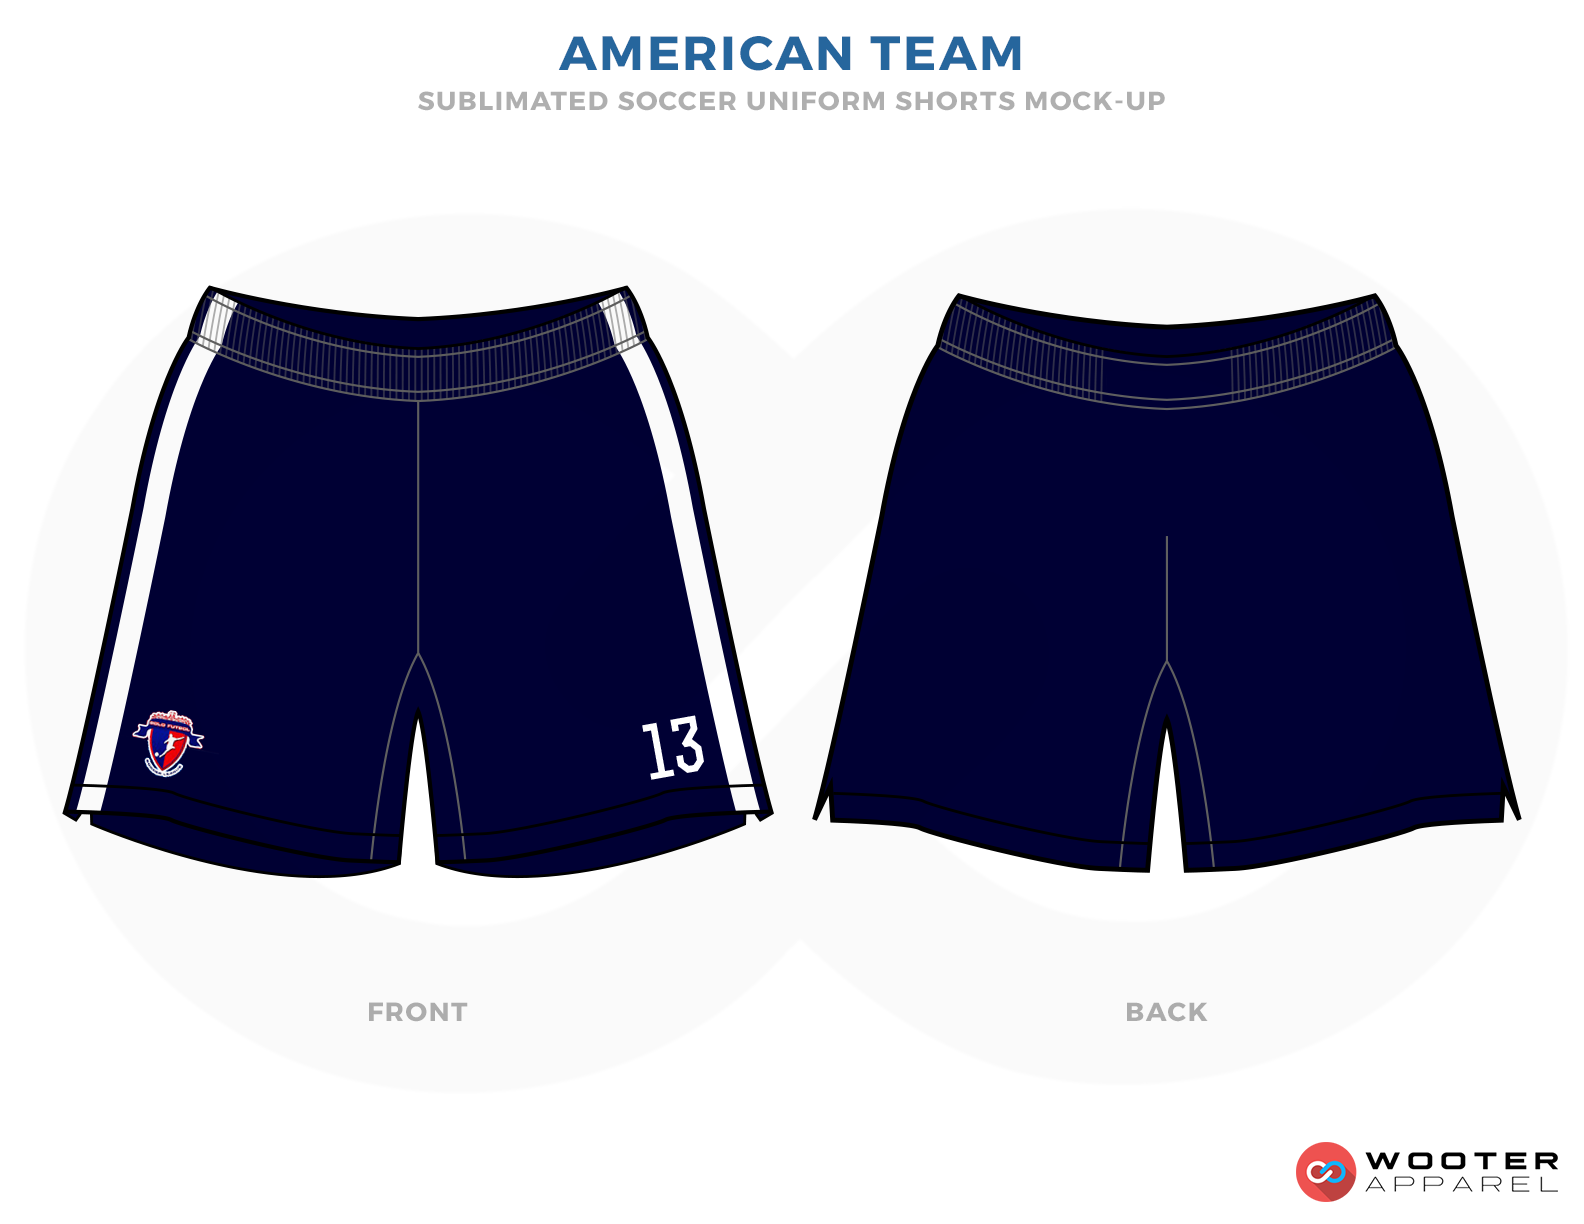 American Team Blue and White Soccer Shorts